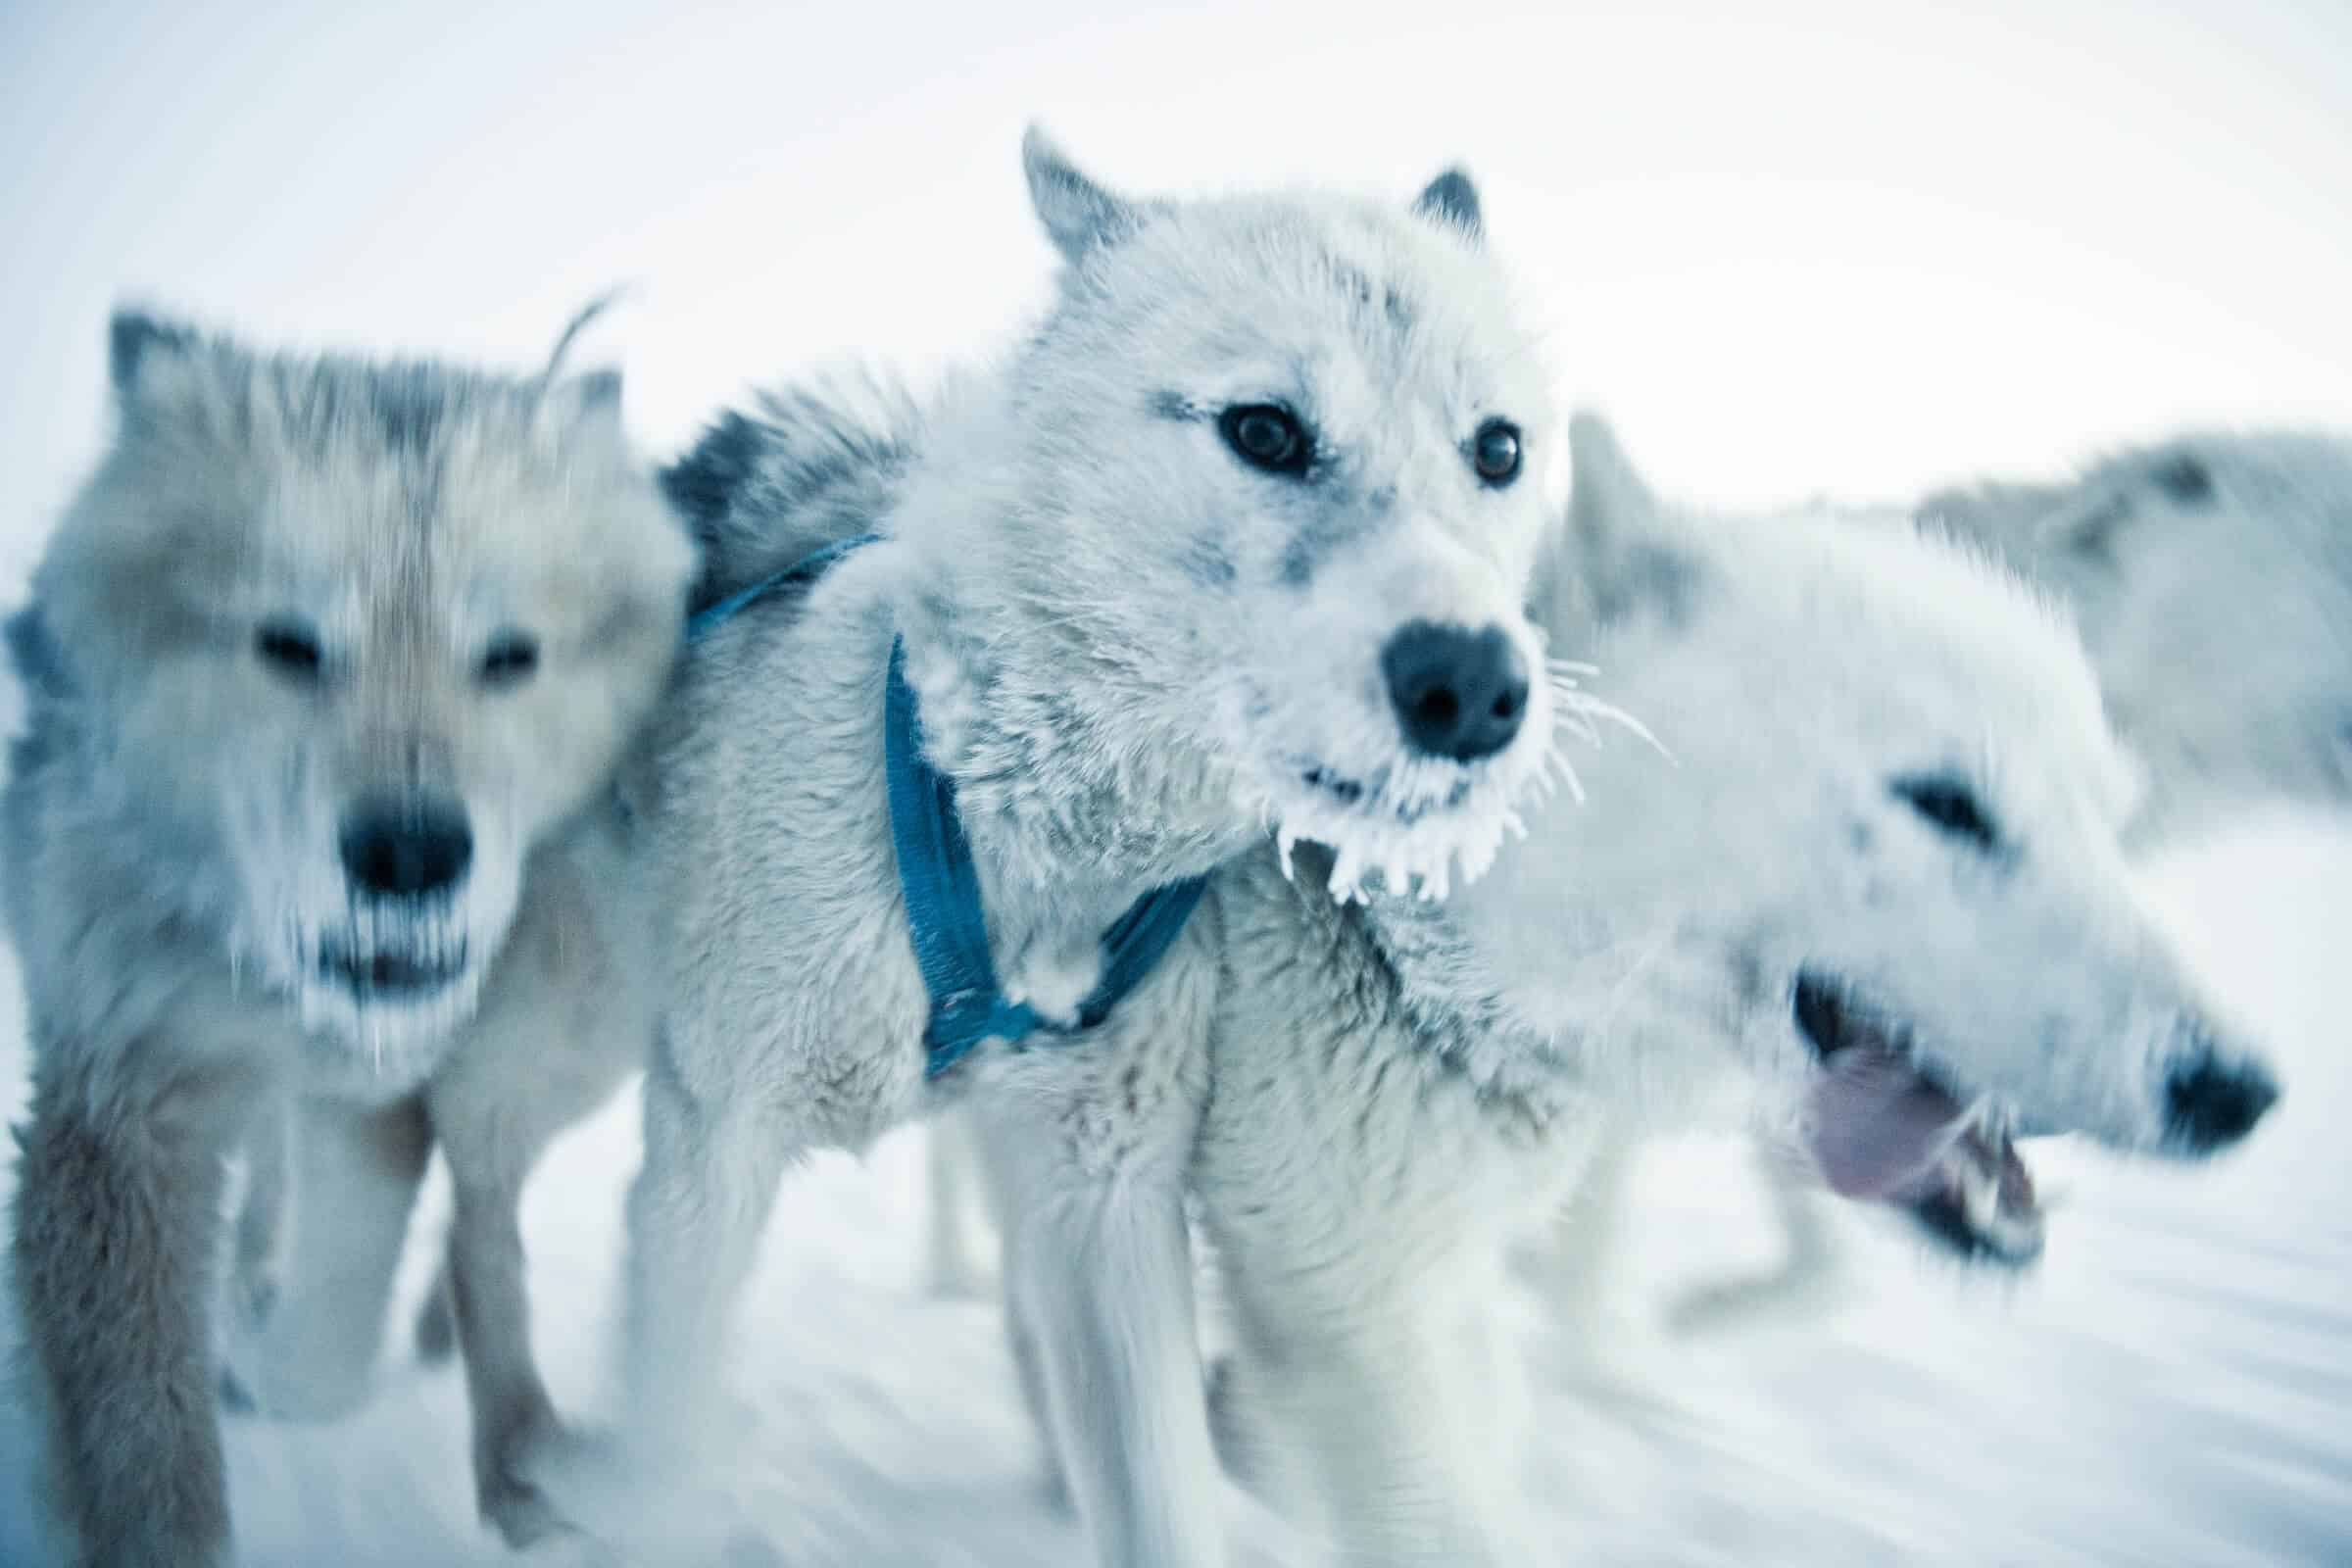 Three white sled dogs from Ilulissat in Greenland. By Andre Schoenherr